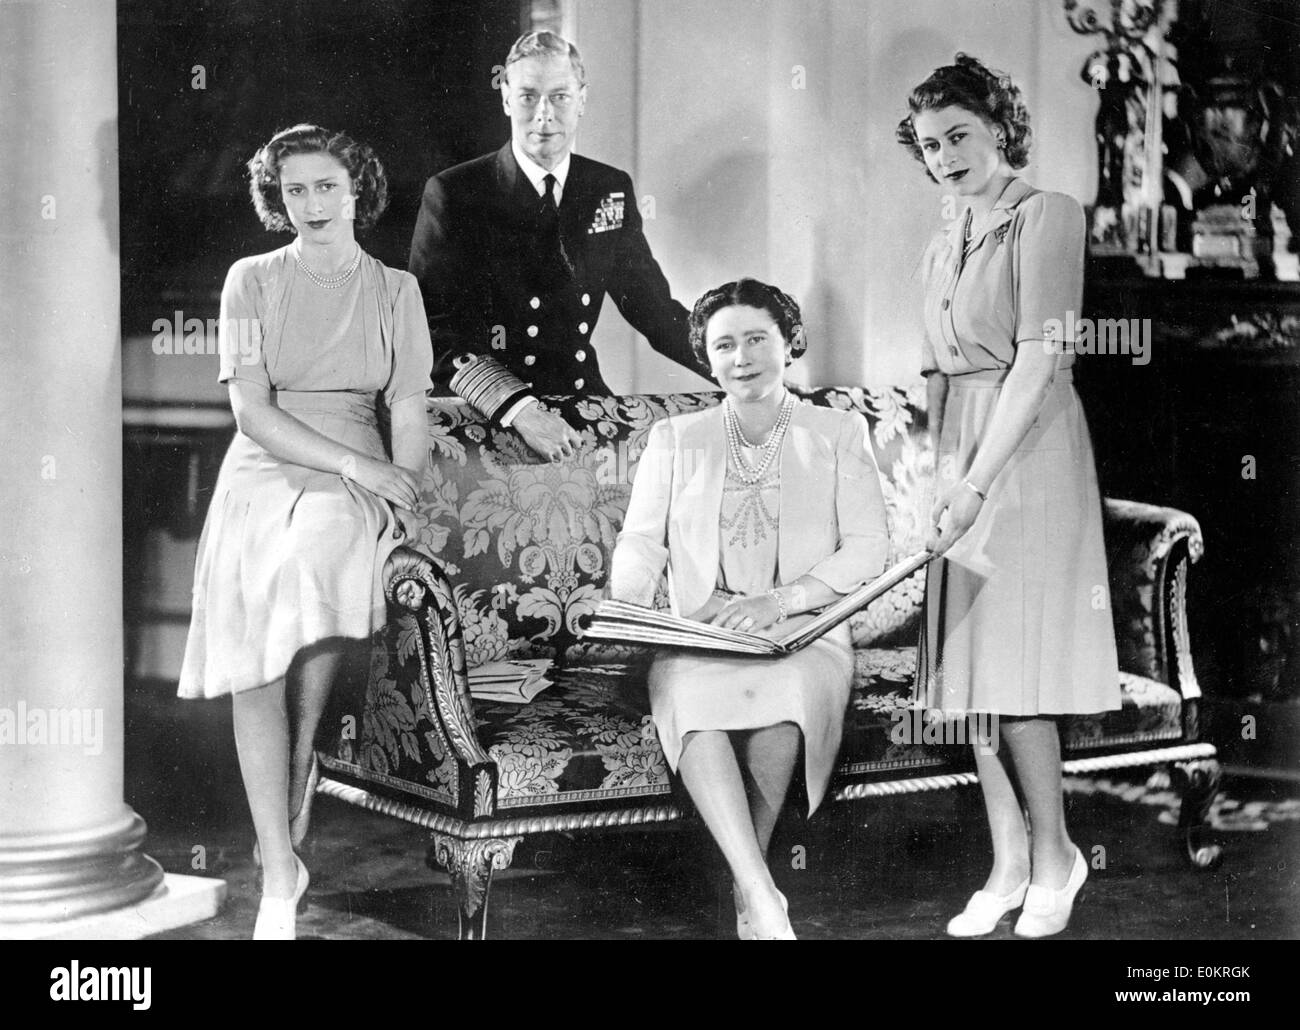 Portrait of King George VI and his family - Stock Image